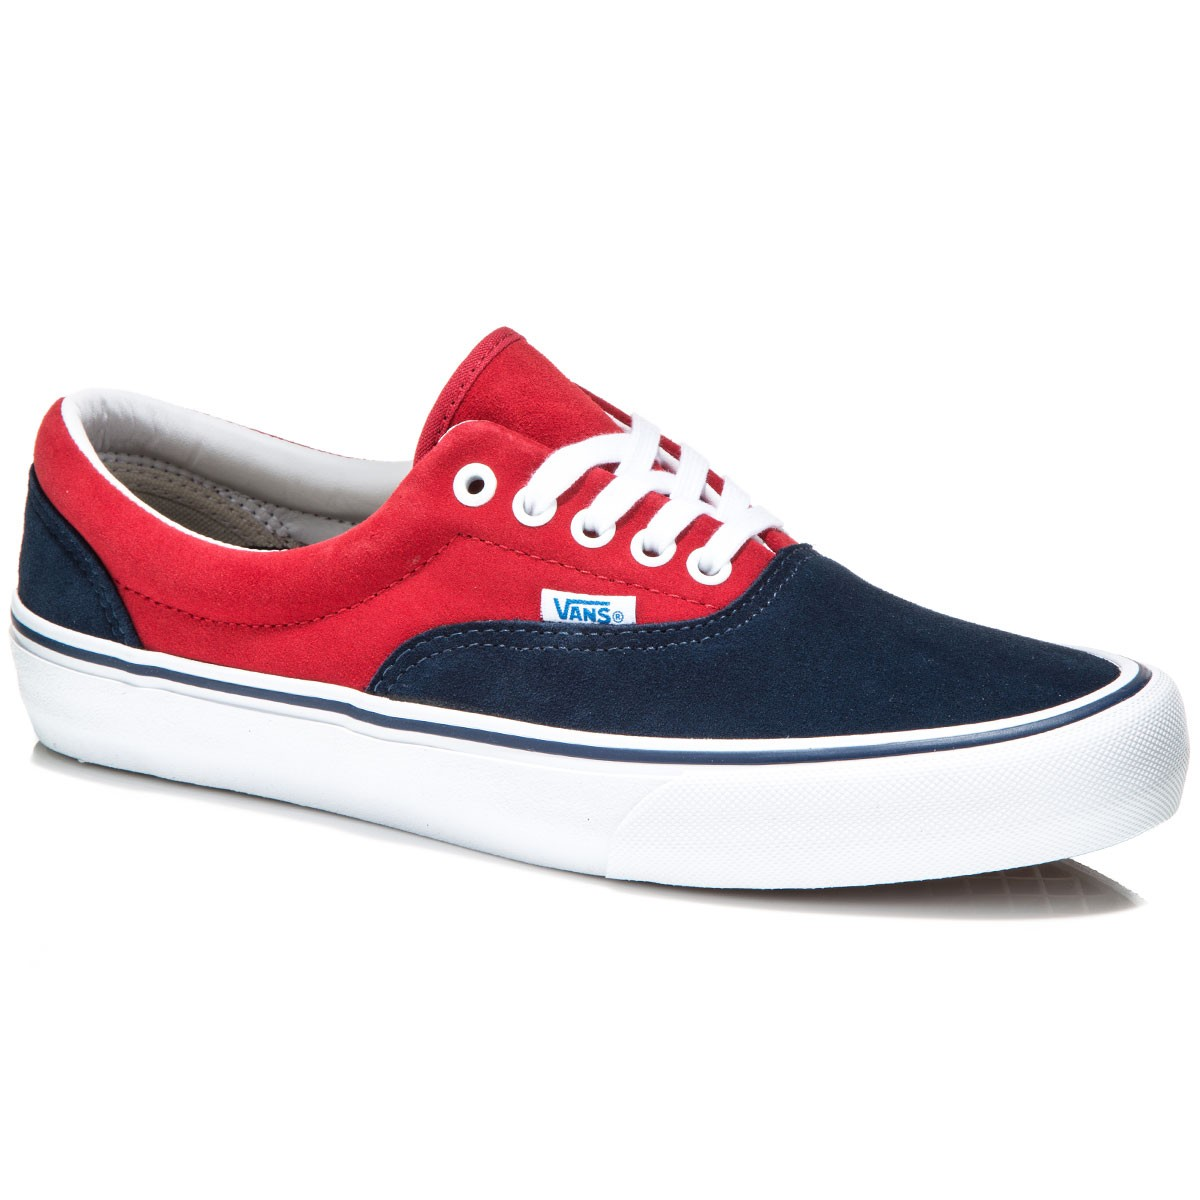 a5a309da4a Vans Era Pro Shoes